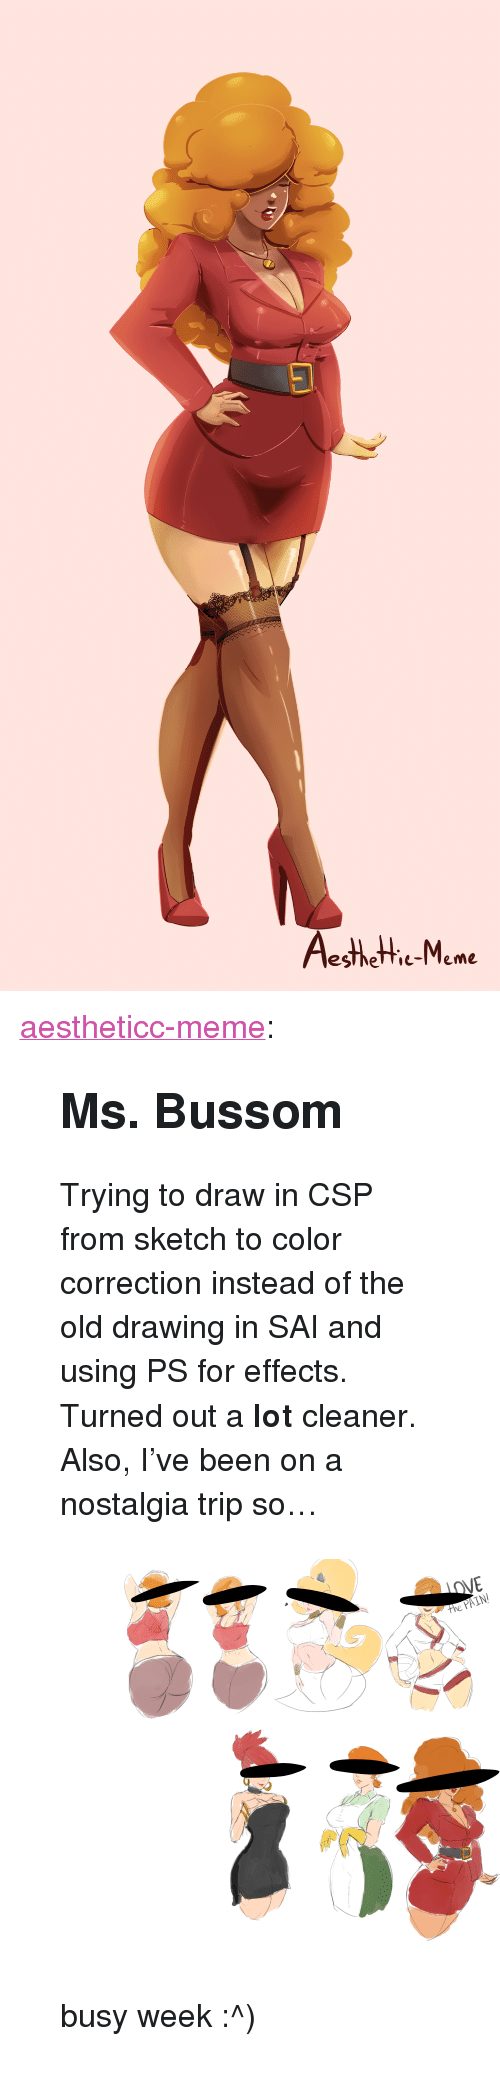 """Meme, Nostalgia, and Target: esthetie-Meme <p><a href=""""https://aestheticc-meme.tumblr.com/post/172005564959/ms-bussom-trying-to-draw-in-csp-from-sketch-to"""" class=""""tumblr_blog"""" target=""""_blank"""">aestheticc-meme</a>:</p>  <blockquote><h2><b>Ms. Bussom</b></h2><p>Trying to draw in CSP from sketch to color correction instead of the old drawing in SAI and using PS for effects. Turned out a <b>lot</b> cleaner.</p><p>Also, I've been on a nostalgia trip so…</p><figure class=""""tmblr-full"""" data-orig-height=""""7313"""" data-orig-width=""""10073""""><img src=""""https://78.media.tumblr.com/280b587b6197f92252b7e23116986d17/tumblr_inline_p5svm2oTcJ1sdoznj_540.png"""" data-orig-height=""""7313"""" data-orig-width=""""10073""""/></figure><p>busy week :^)</p></blockquote>"""